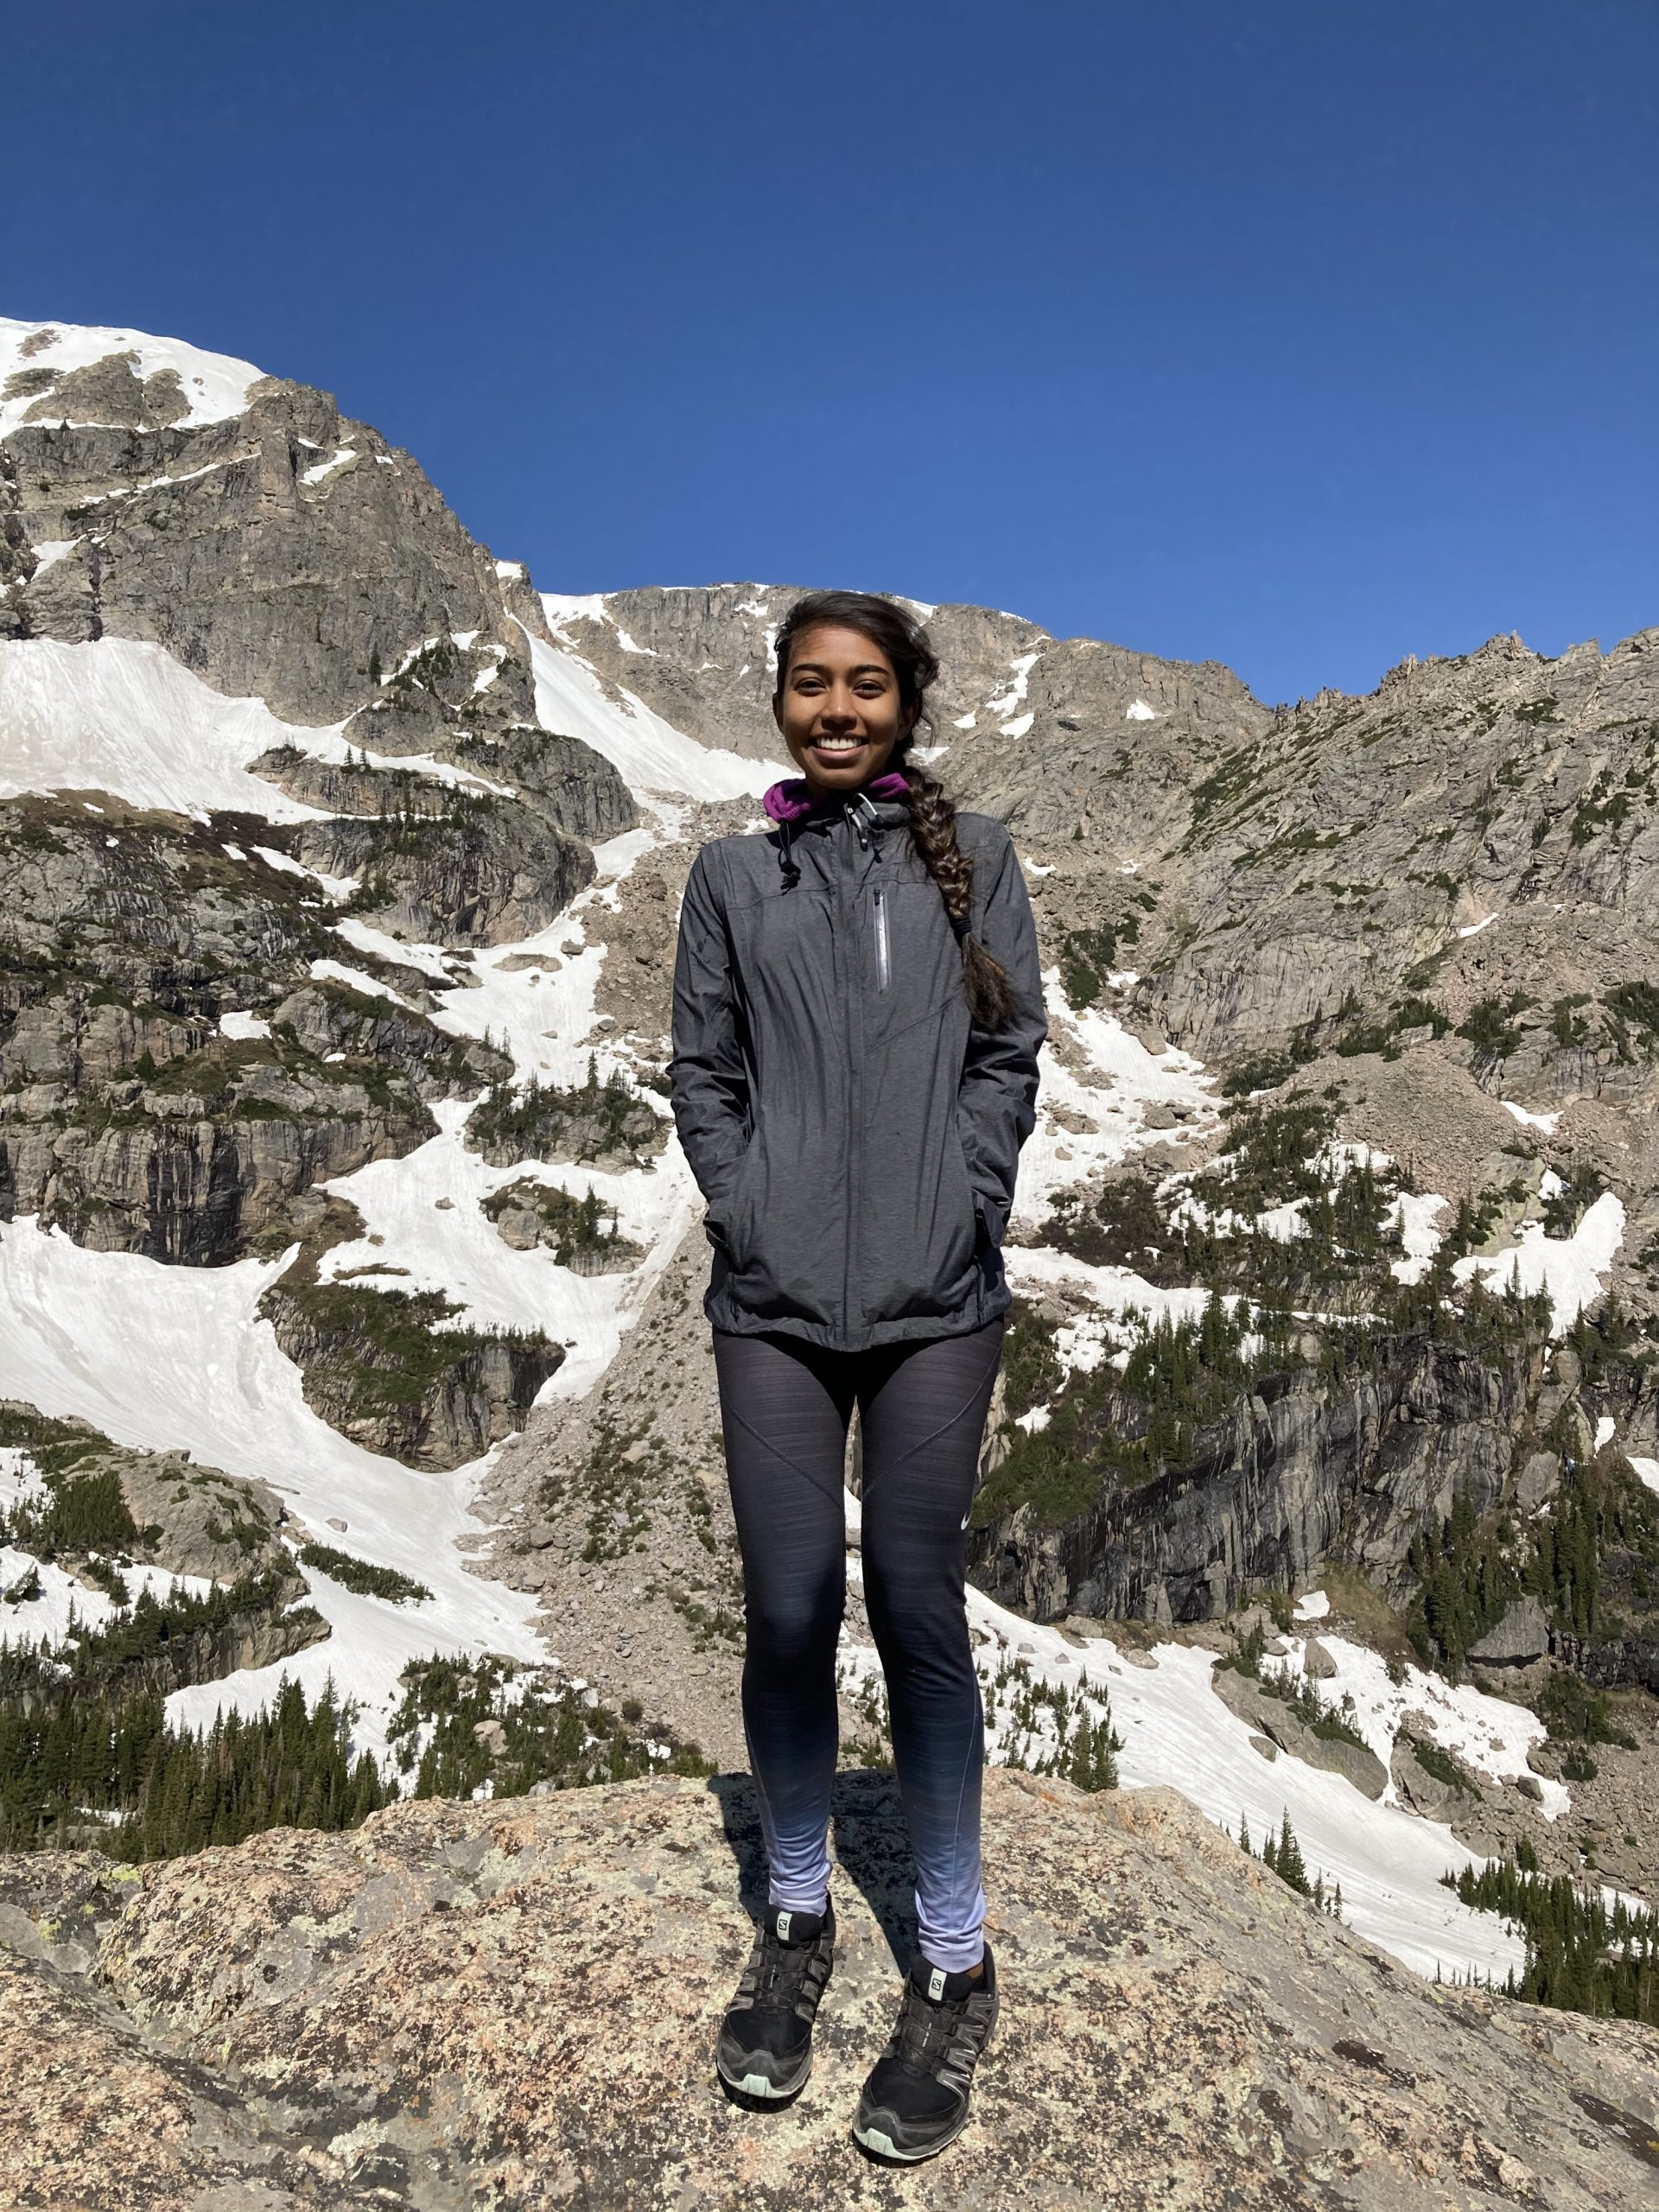 Humsini Acharya writes about the problem of representation in climbing, and how as a young Indian American there weren't climbers that looked like her to look up to.